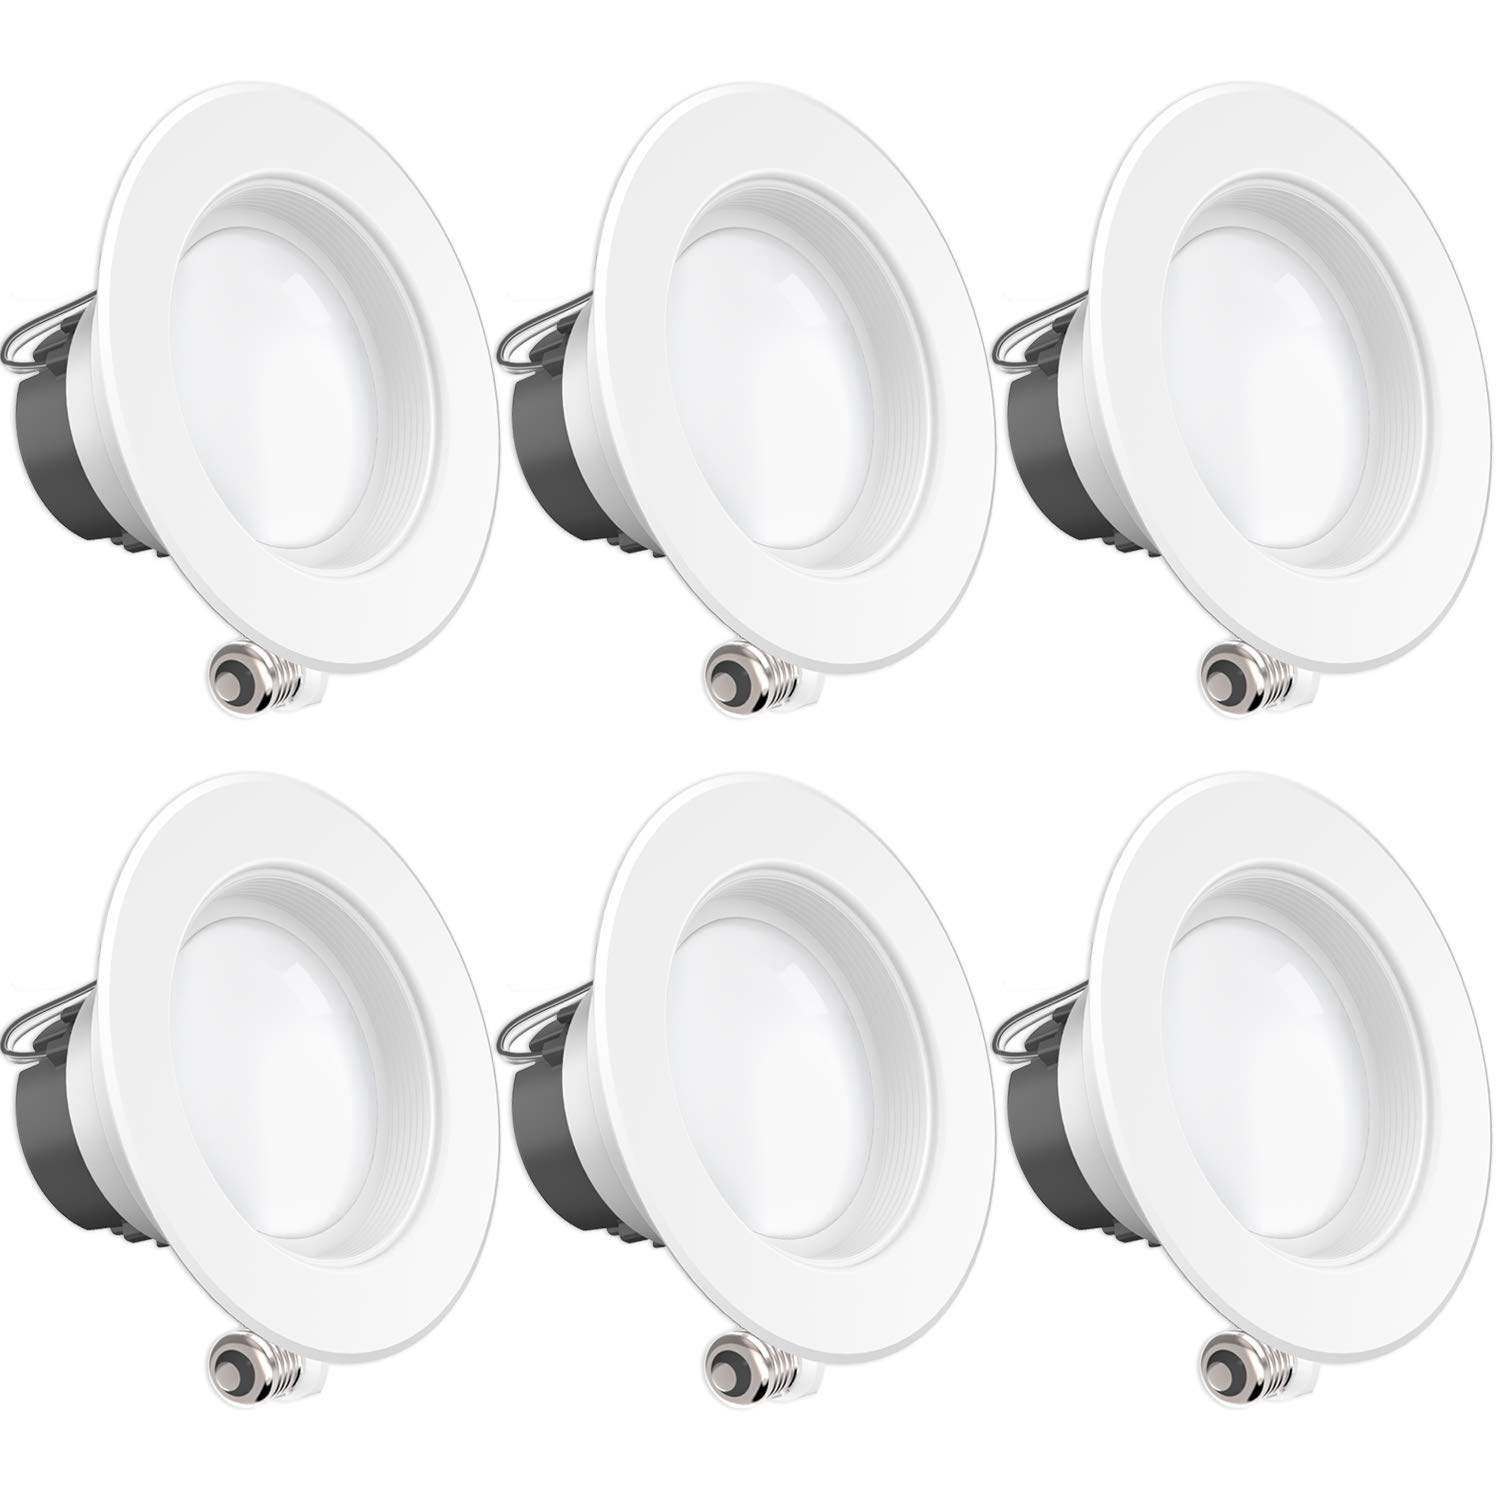 Sunco Lighting 6 Pack 4 Inch Baffle Recessed Retrofit Kit Dimmable LED Light, 11W (40W Replacement), 5000K Kelvin Daylight, Quick/Easy Can Install, 660 Lumen, Wet Rated